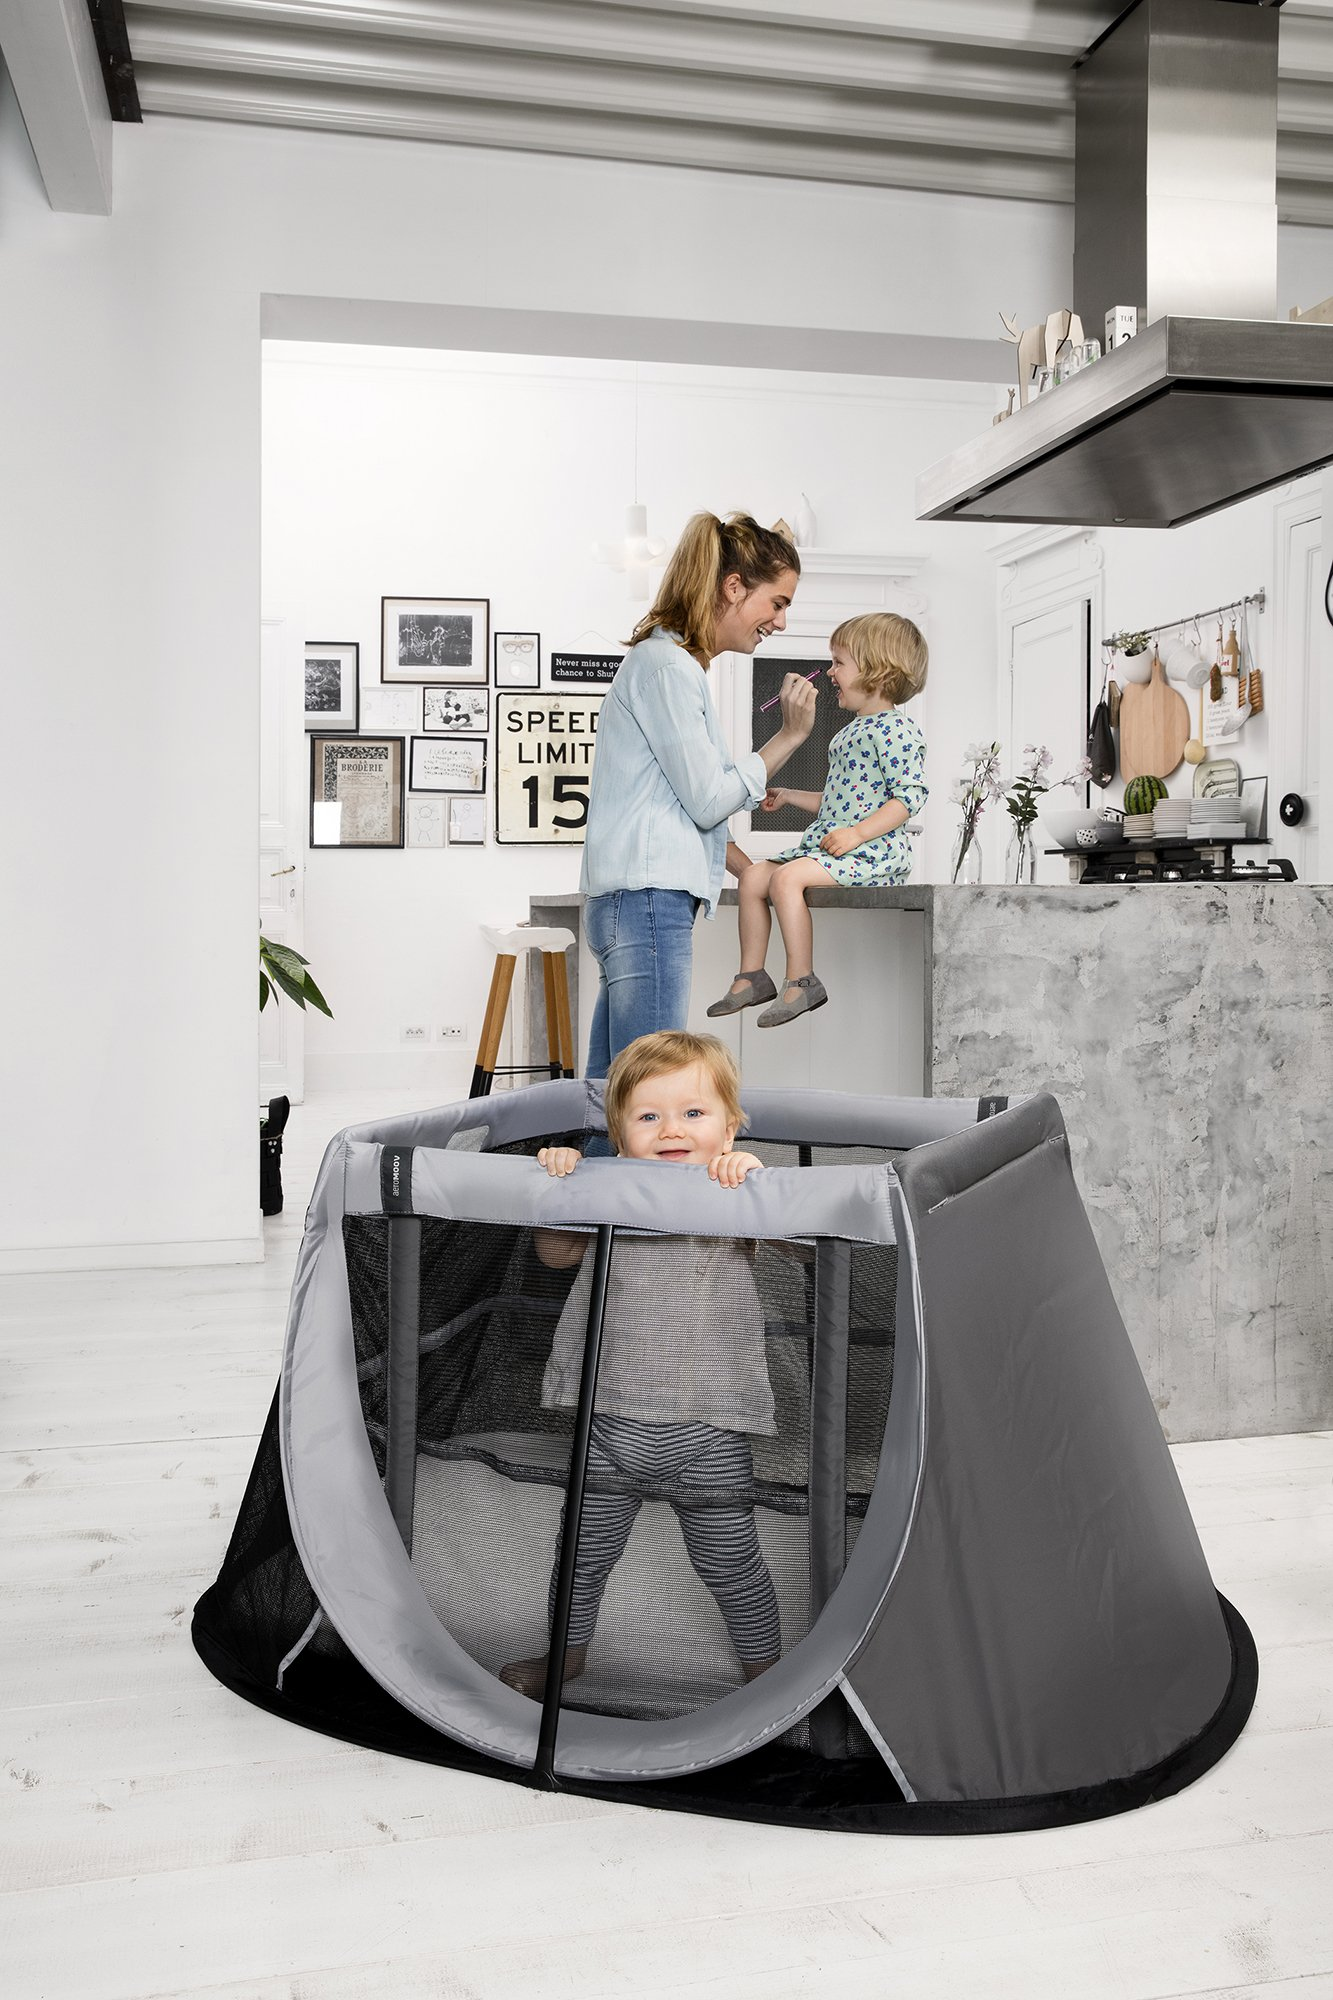 AEROMOOV - Instant Travel Bed - Allows Your Child to take a nap Wherever You are - Light and Compact - Stone Grey AeroMoov COMPACT AND LIGHT: No more carrying a heavy and bulky travel bed! The AeroMoov Instant Travel Bed weighs less than 5kg and is easy to store thanks to its slim and elegant storage bag. TO BE TAKEN EVERYWHERE: At Grandma and Grandpa's, on the beach or in your garden, allow your little one to take a pleasant nap or play, without ever losing sight of him thanks to the transparent sides. FAST ASSEMBLY AND STORAGE: Installing your Instant Travel Bed becomes child's play. Mount and dismantle it in just 2 seconds. 2